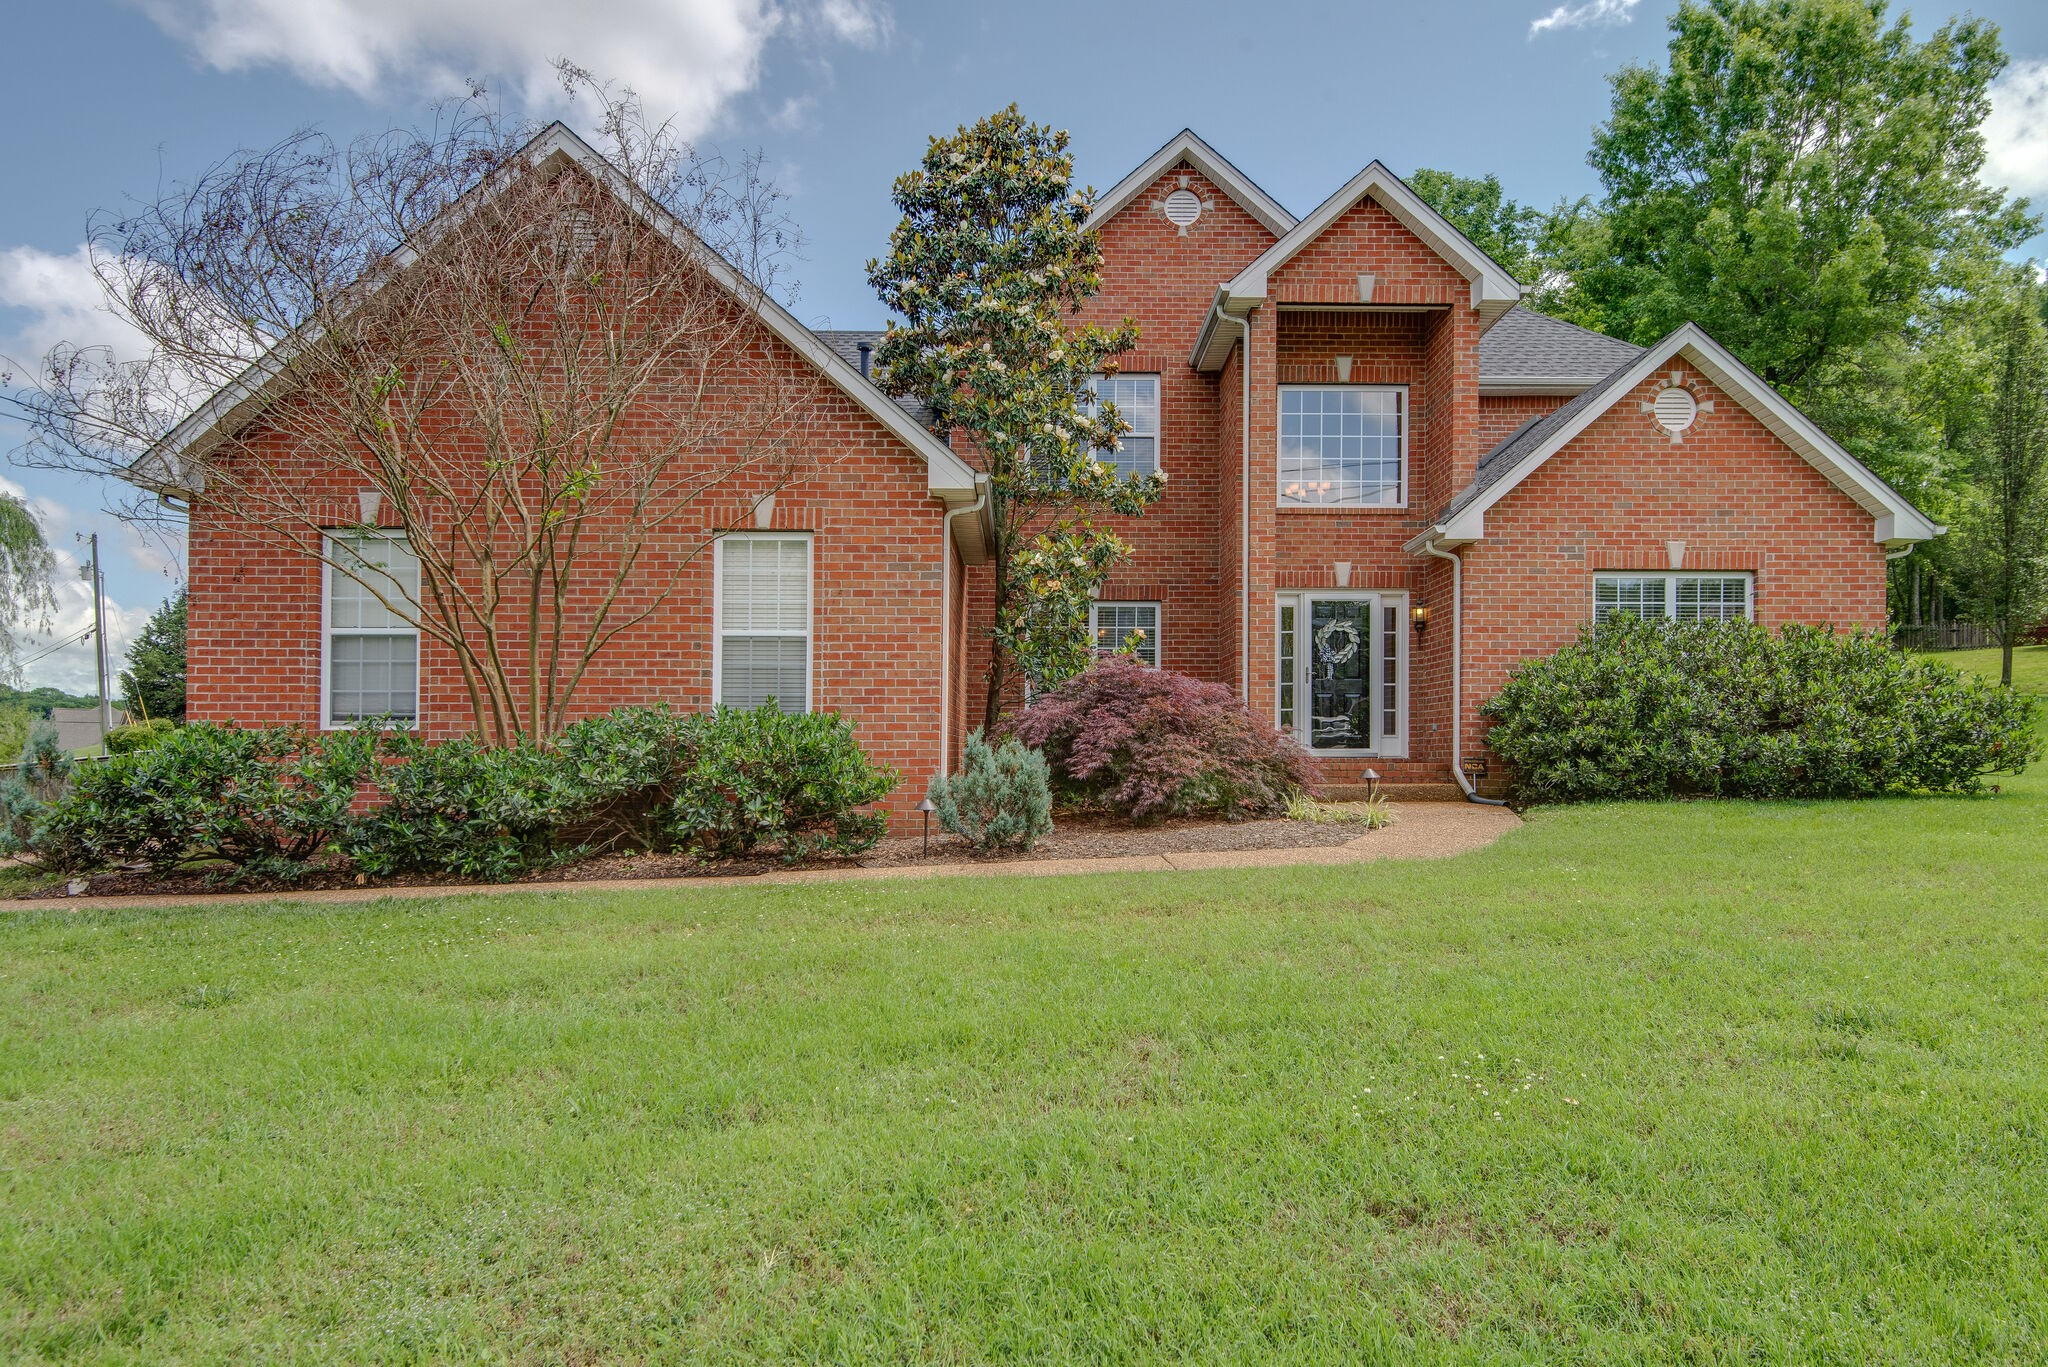 Enjoy one of the largest lots in the community on a fenced corner lot w/walkability to Wilco schools & Historic Nolensville. The open floor plan offers master on the main. Built-in shelves in formal living or home office. The large bonus room over the garage has beautiful built-in shelving and bench area. The fenced back yard has a brand new deck & storage shed. The most recent updates including a new roof, interior paint, new hardwood floors, carpet, renovated kitchen & bathrooms. A must see!